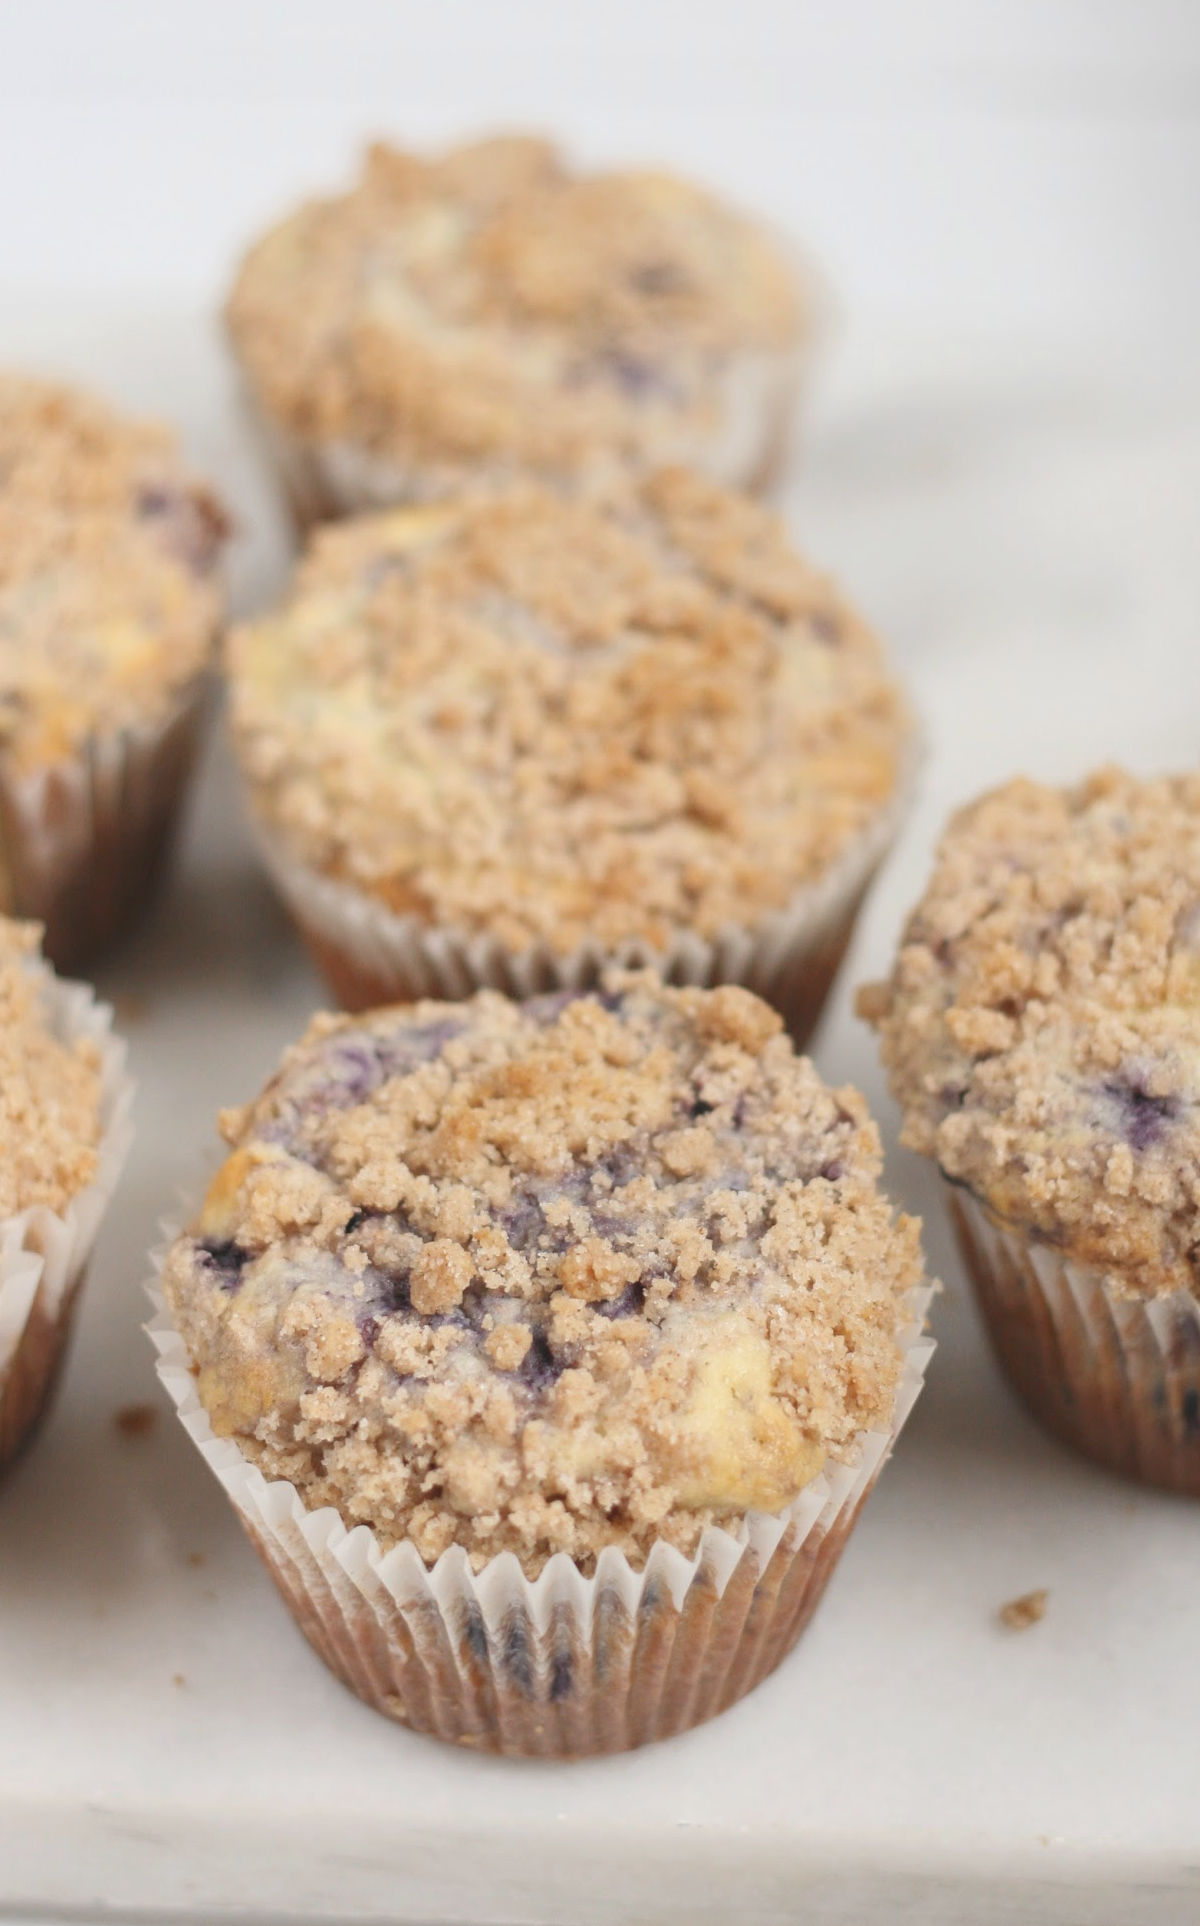 Blueberry muffins with crumb topping in paper liners on white marble,